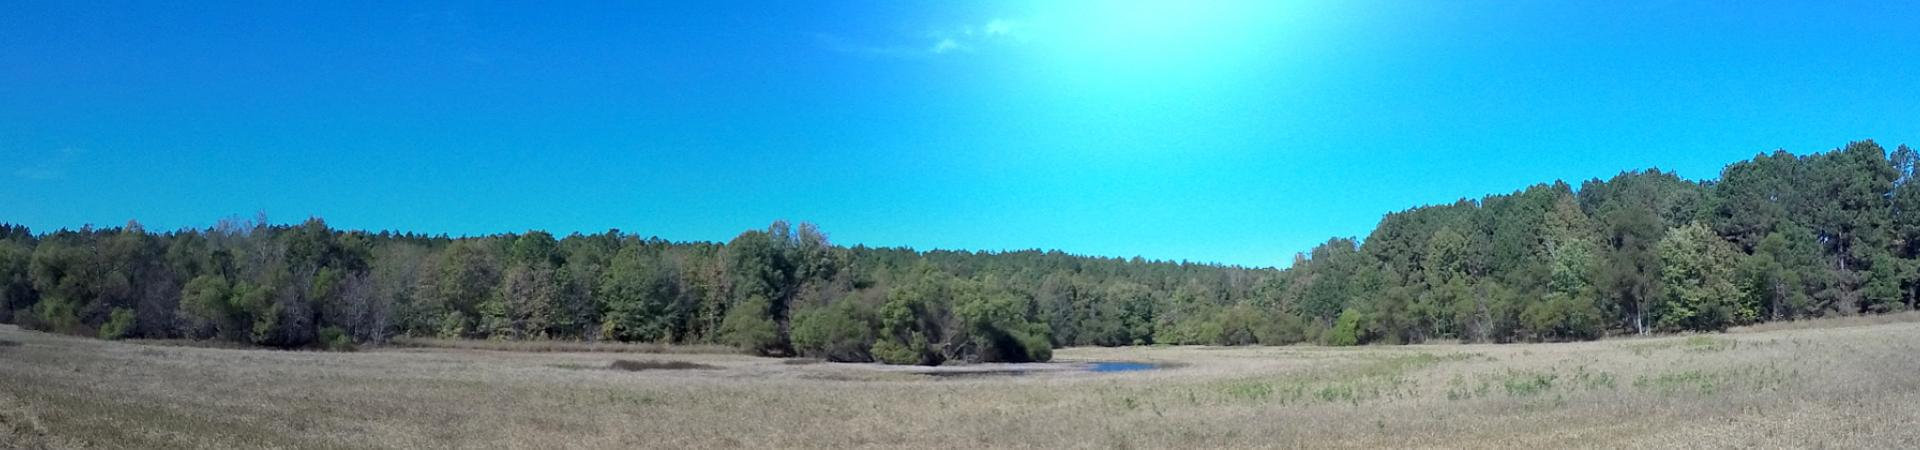 waterfowl impoundment at Oconee WMA